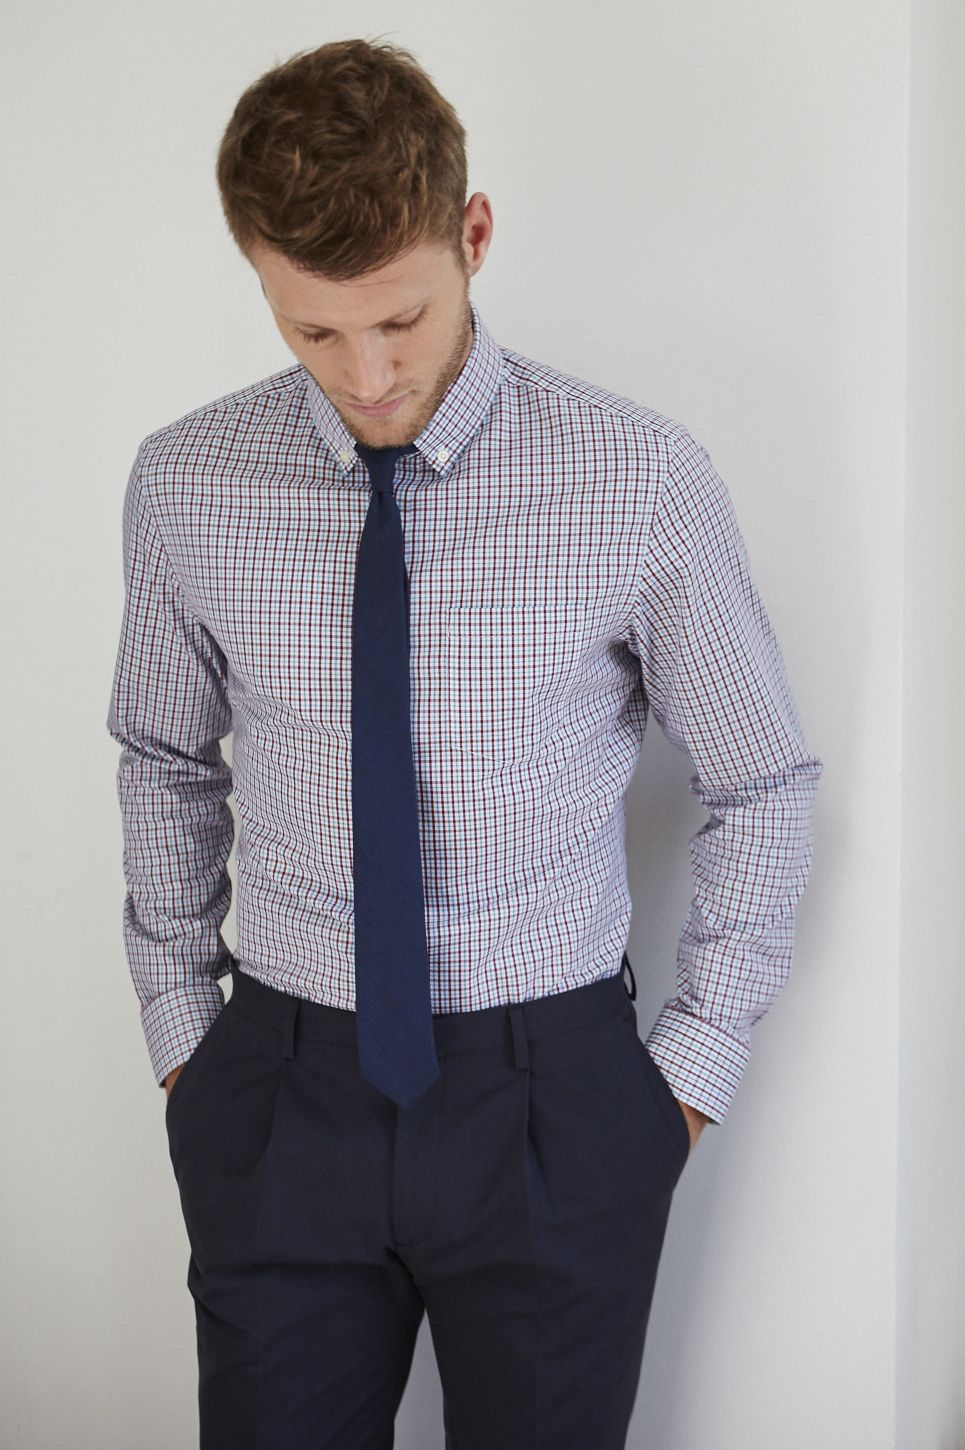 A Range Of Shirts That Fit Perfectly Is A Must Have We Love This